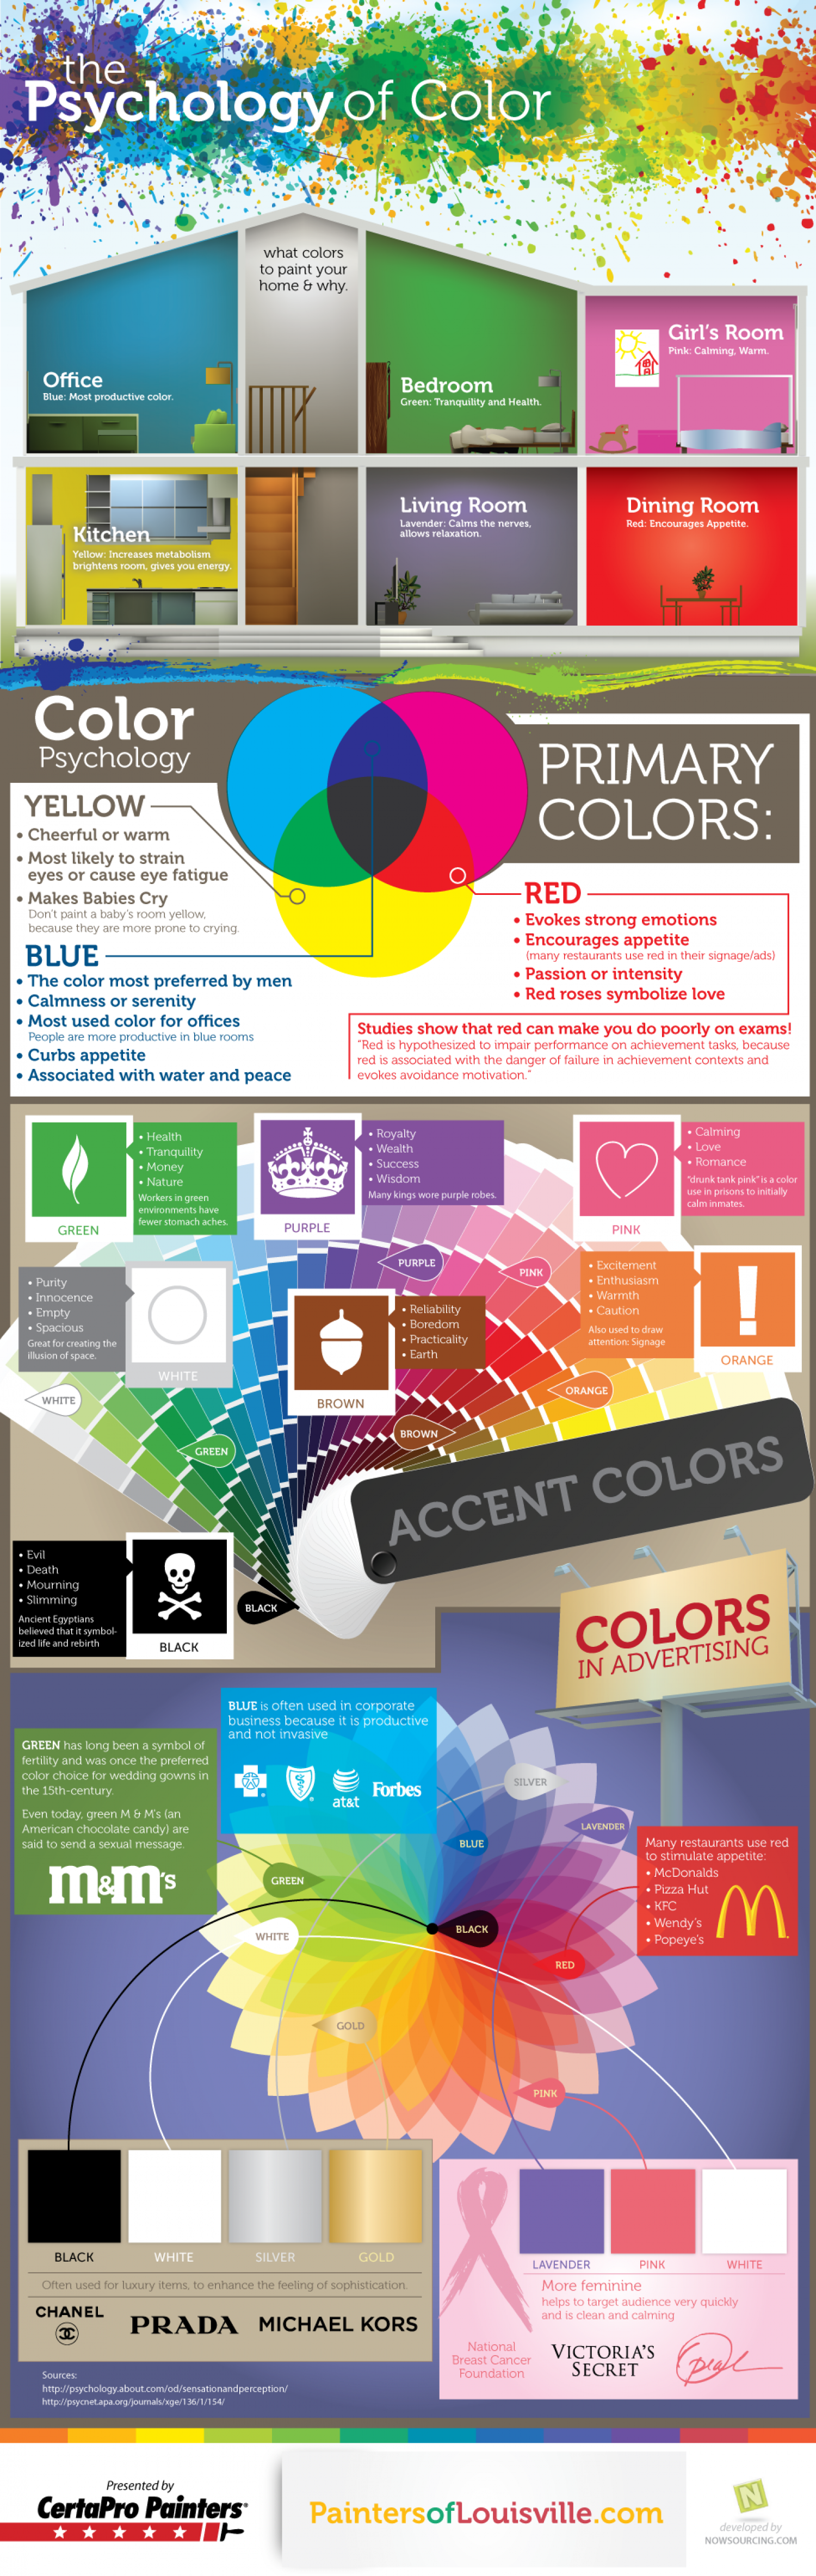 The Psychology of Color Infographic